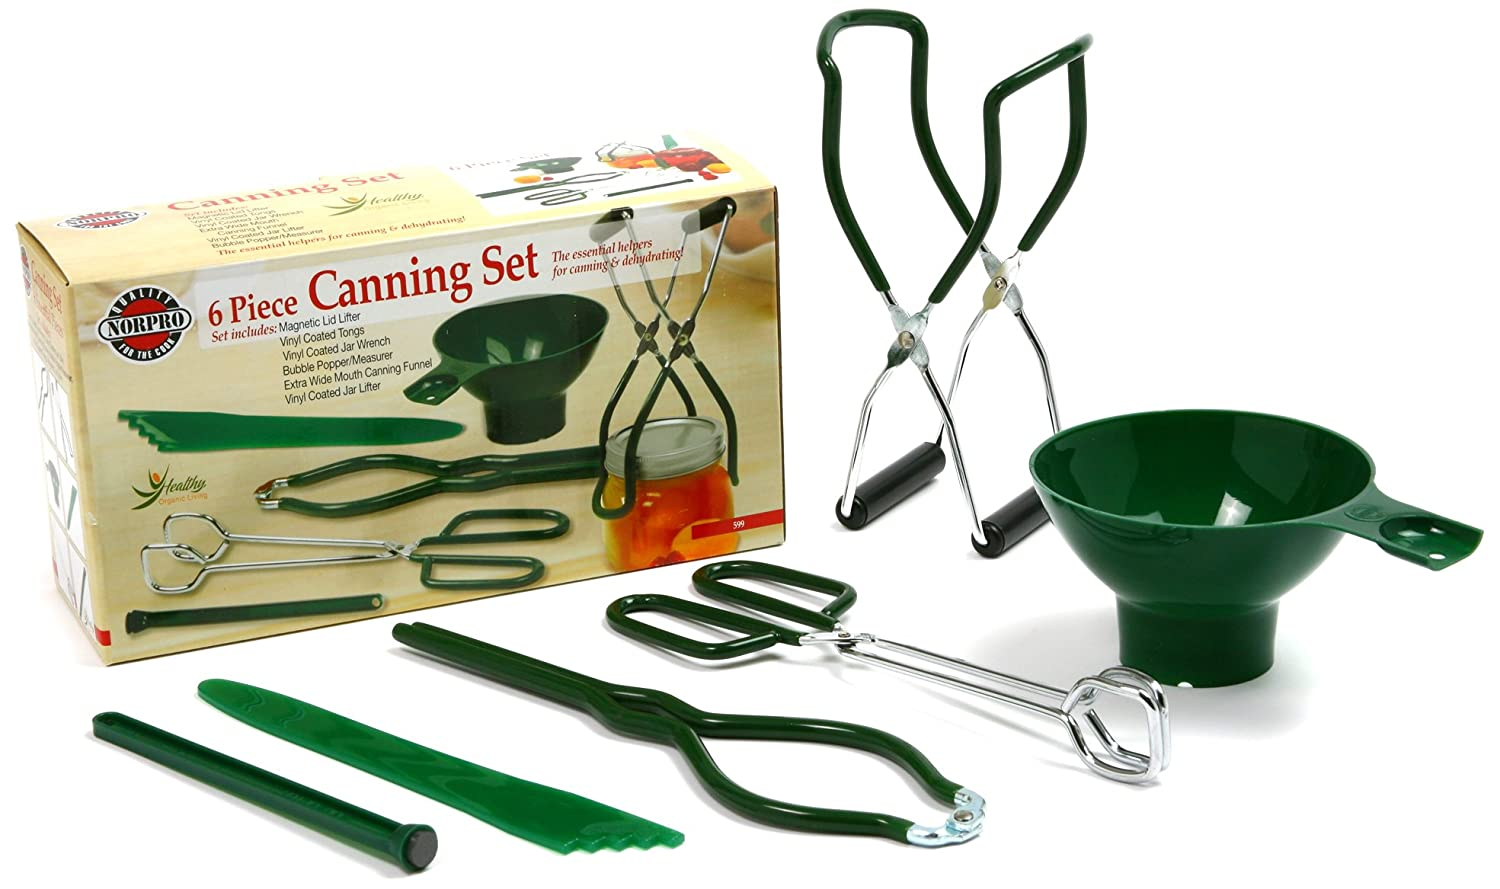 6-Piece Canning Set